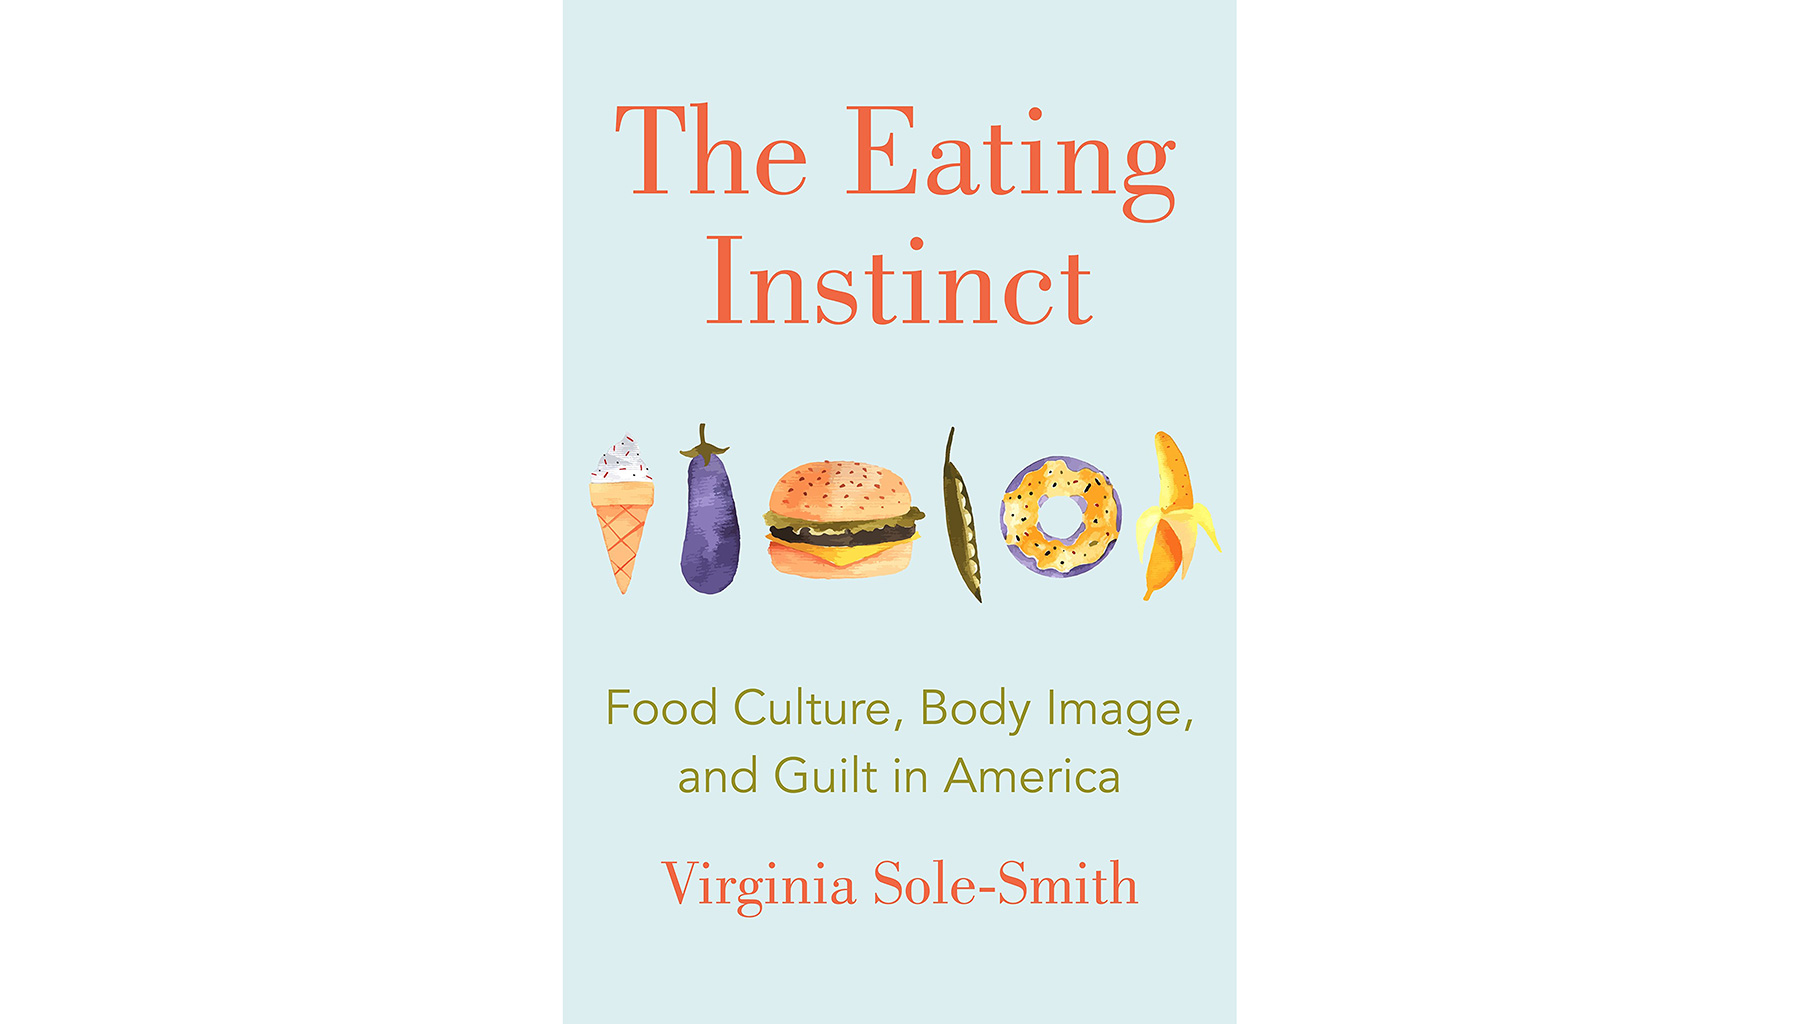 The Eating Instinct, by Virginia Sole-Smith